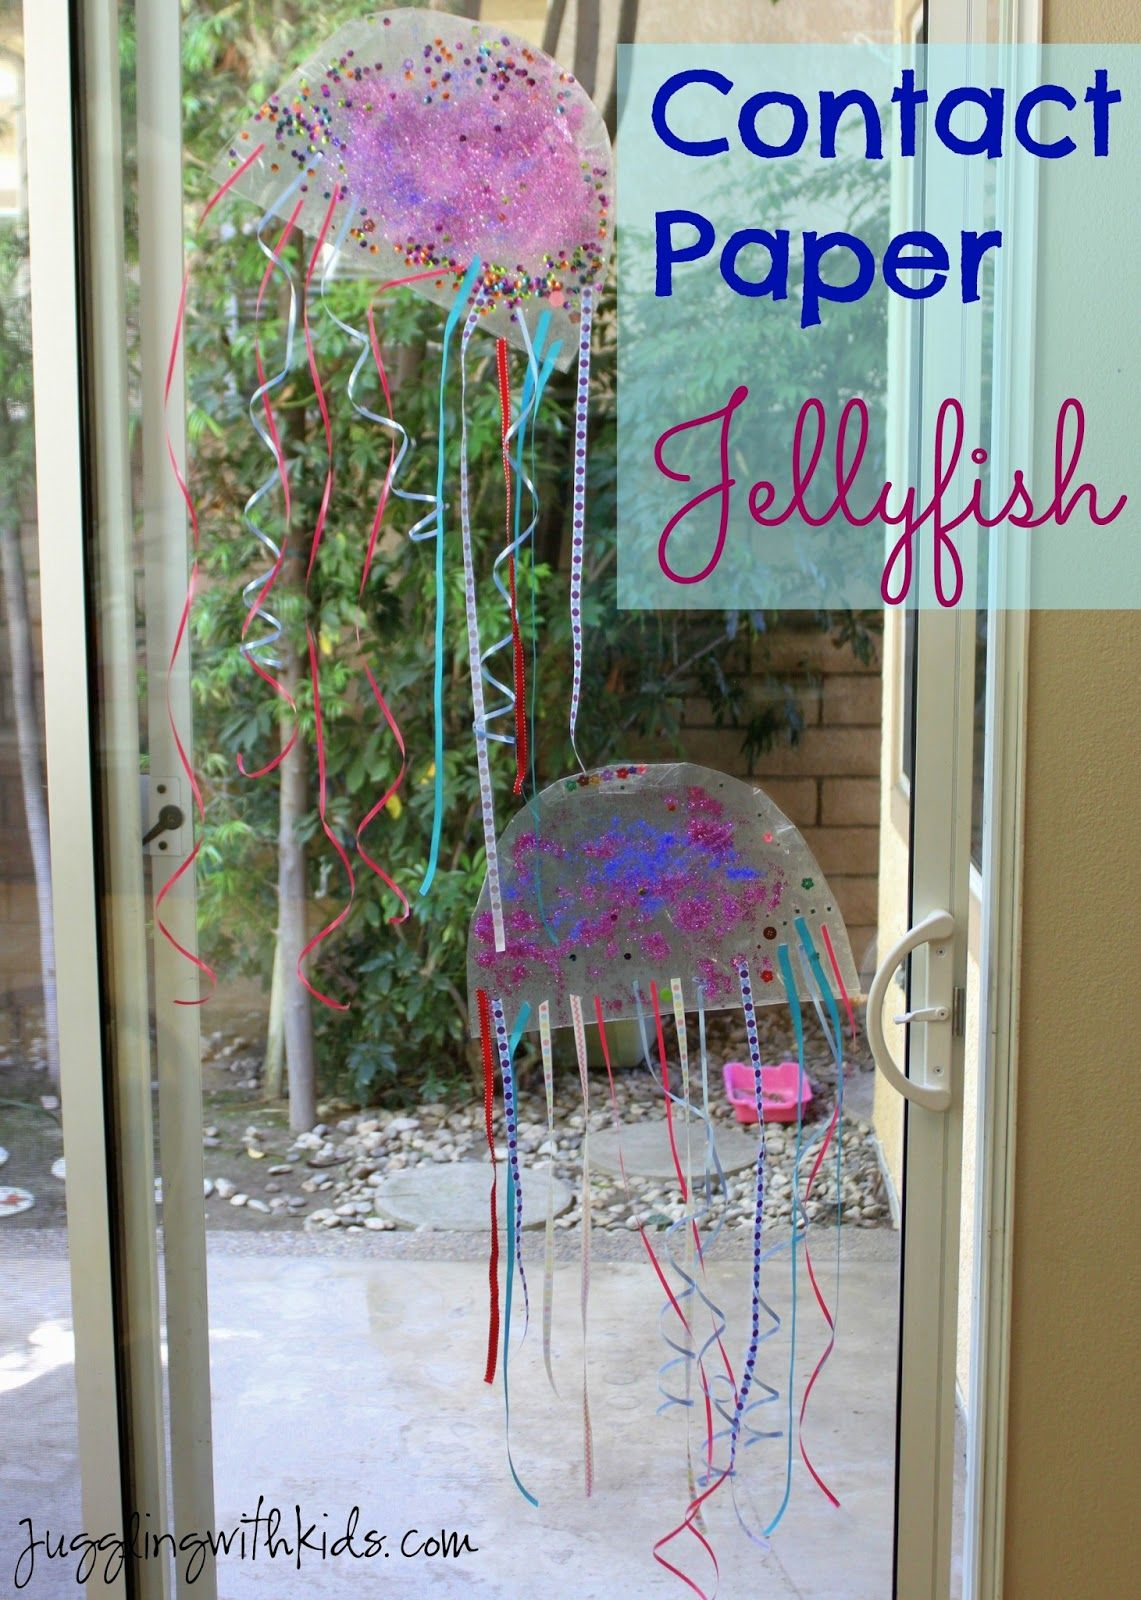 Juggling With Kids Contact Paper Jellyfish